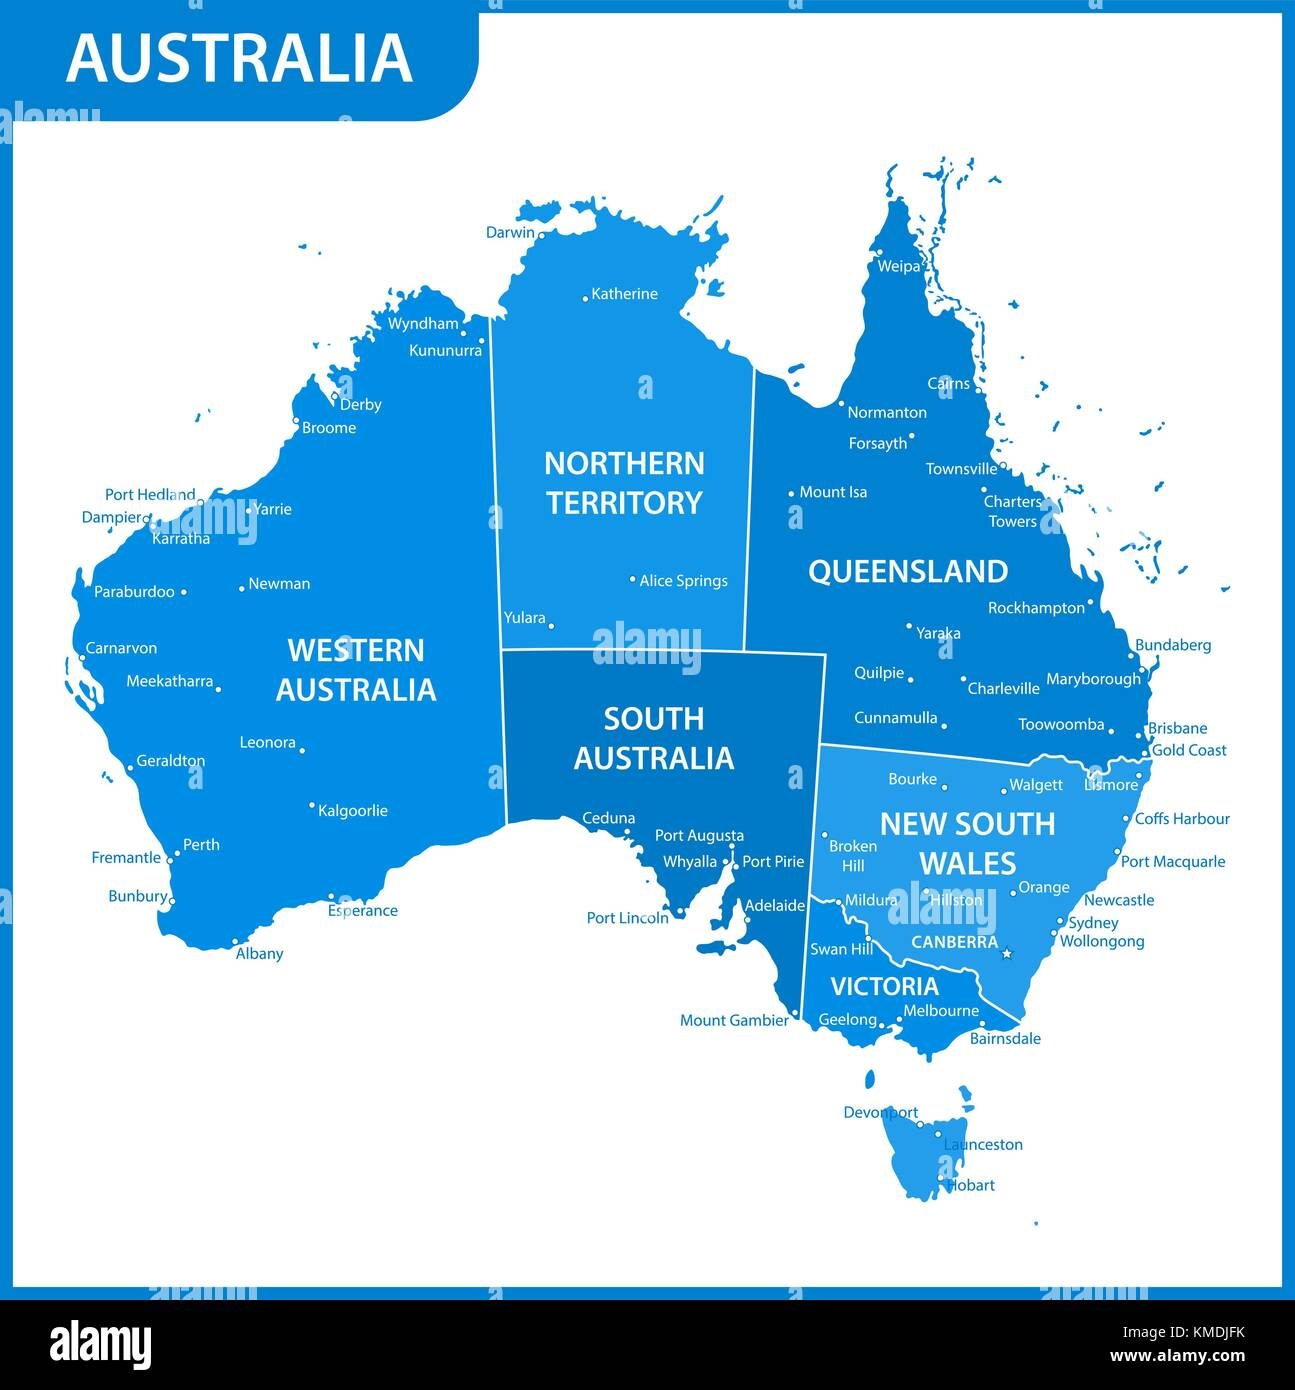 Australia Map Detailed.The Detailed Map Of The Australia With Regions Or States And Cities